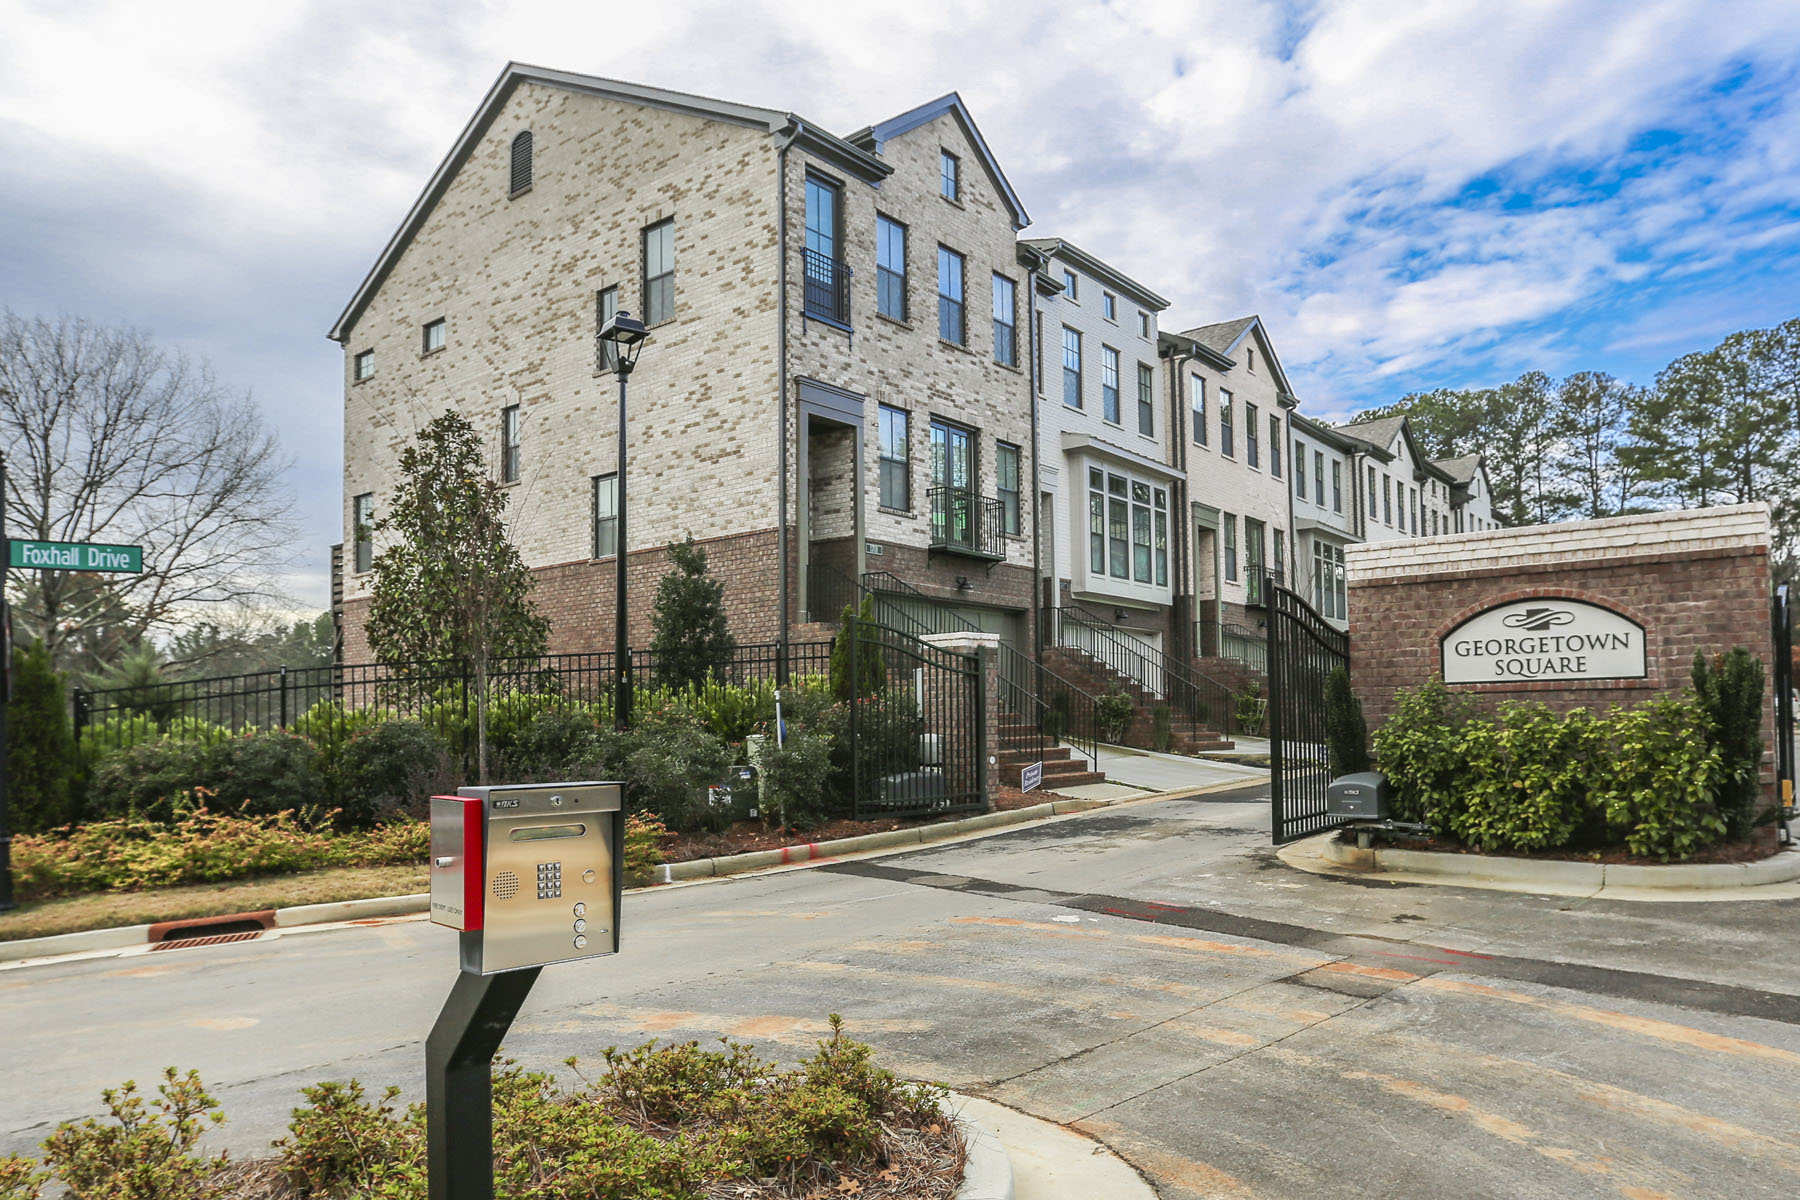 타운하우스 용 매매 에 New Construction Townhome in the Heart of Dunwoody 4330 Georgetown Square Unit 15 Dunwoody, 조지아 30338 미국